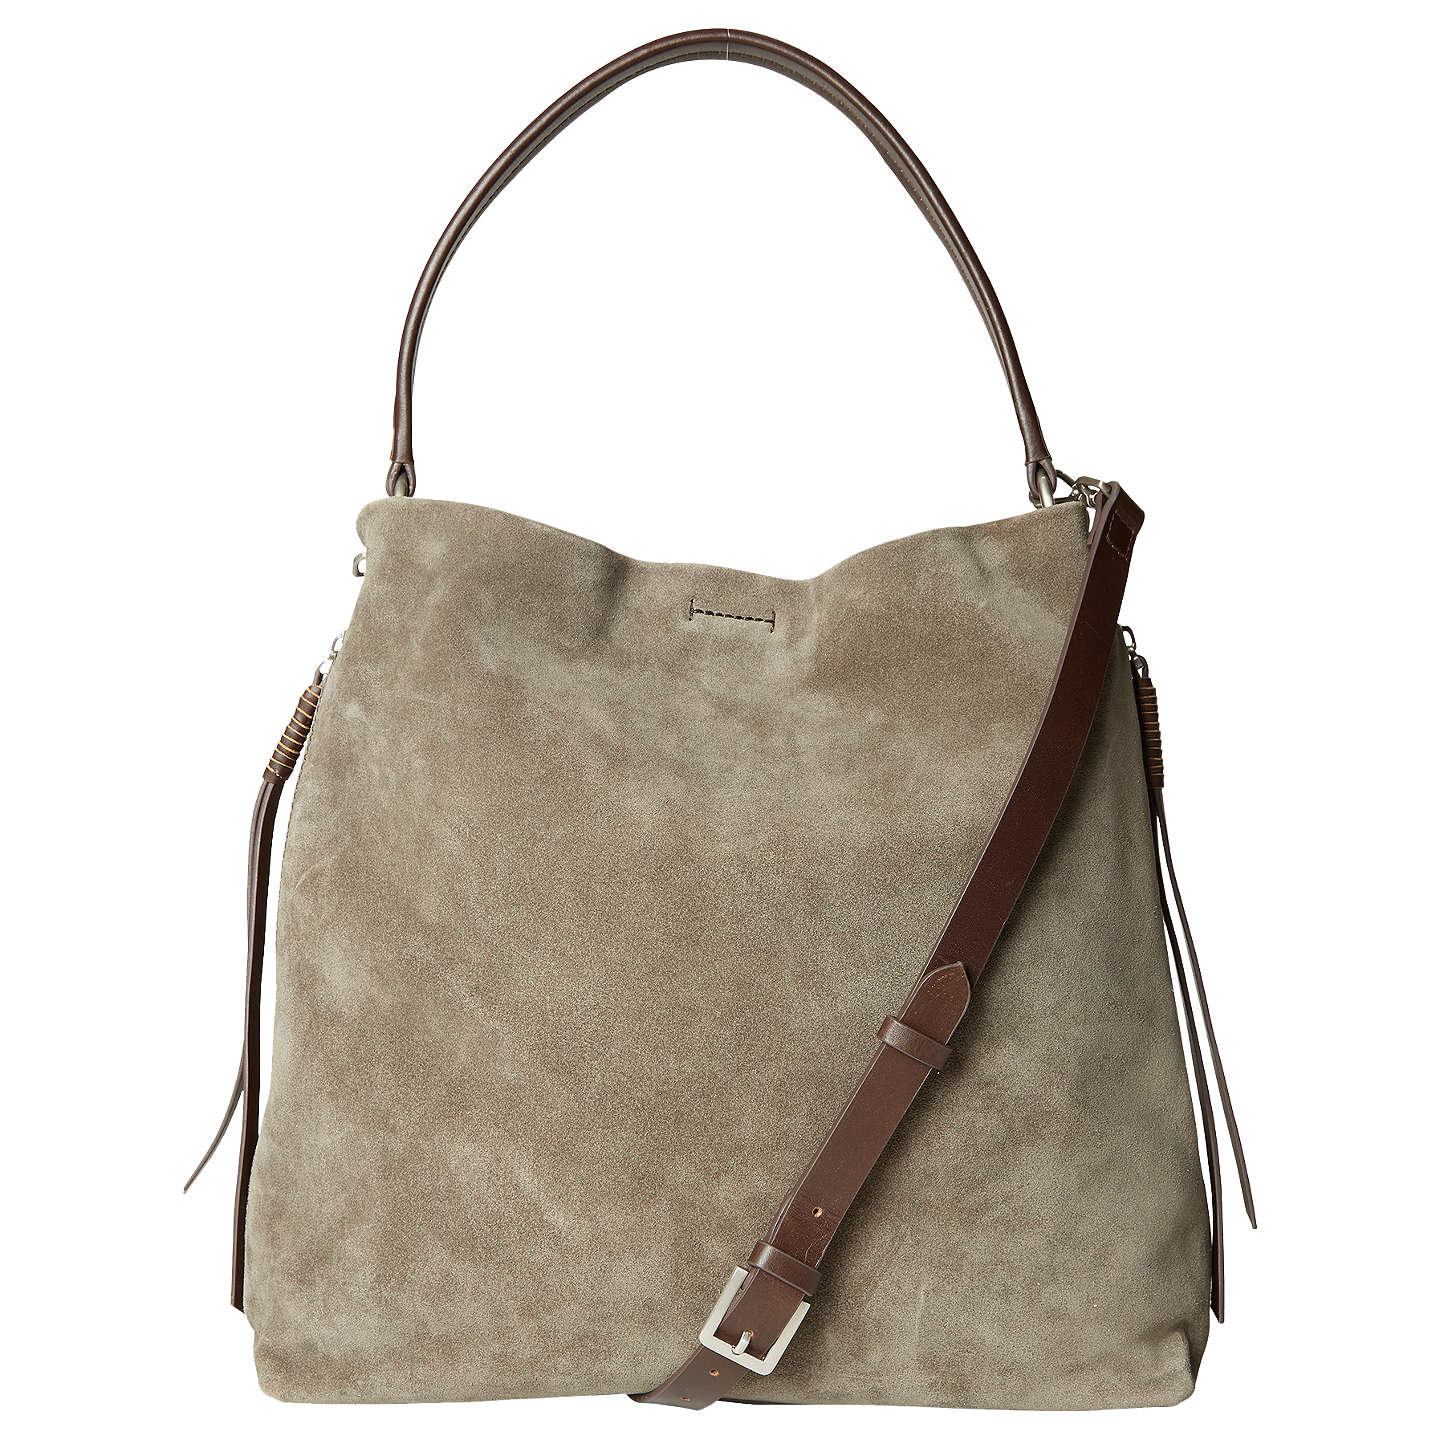 White Stuff Shea Nubuck Leather Hobo Bag Taupe Online At Johnlewis